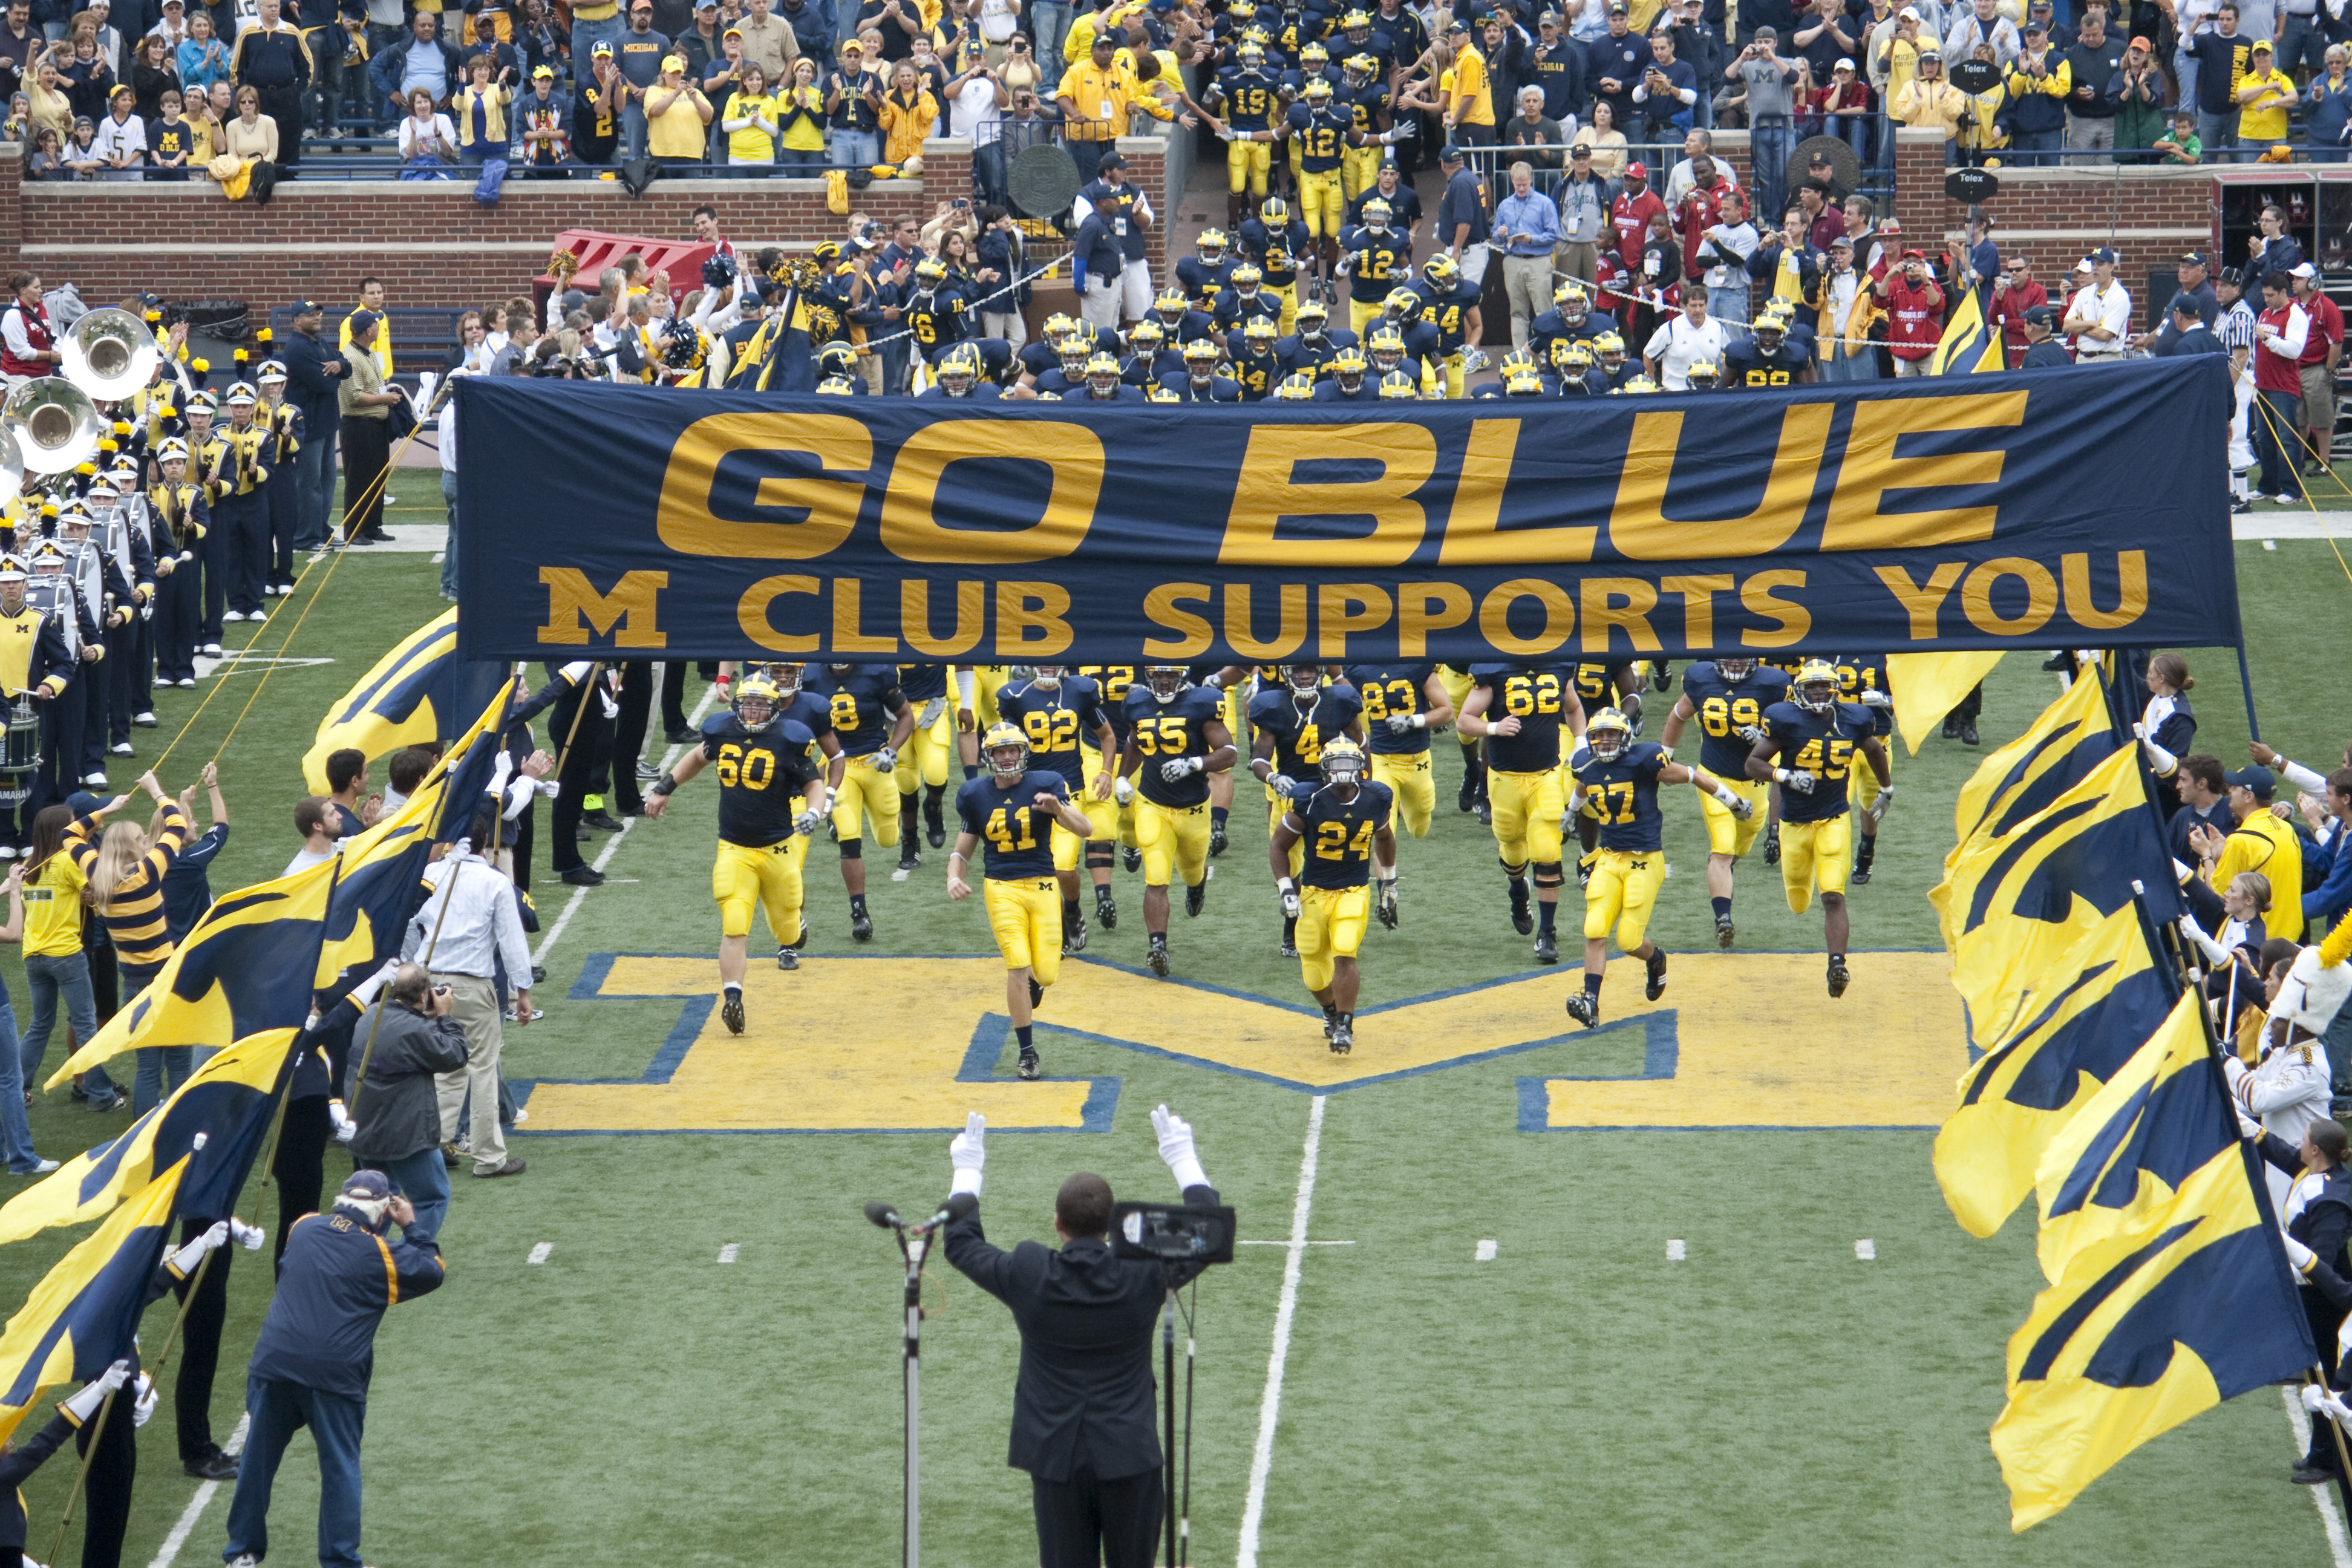 20090926_Michigan_Wolverines_football_team_enters_the_field_with_marching_band_salute